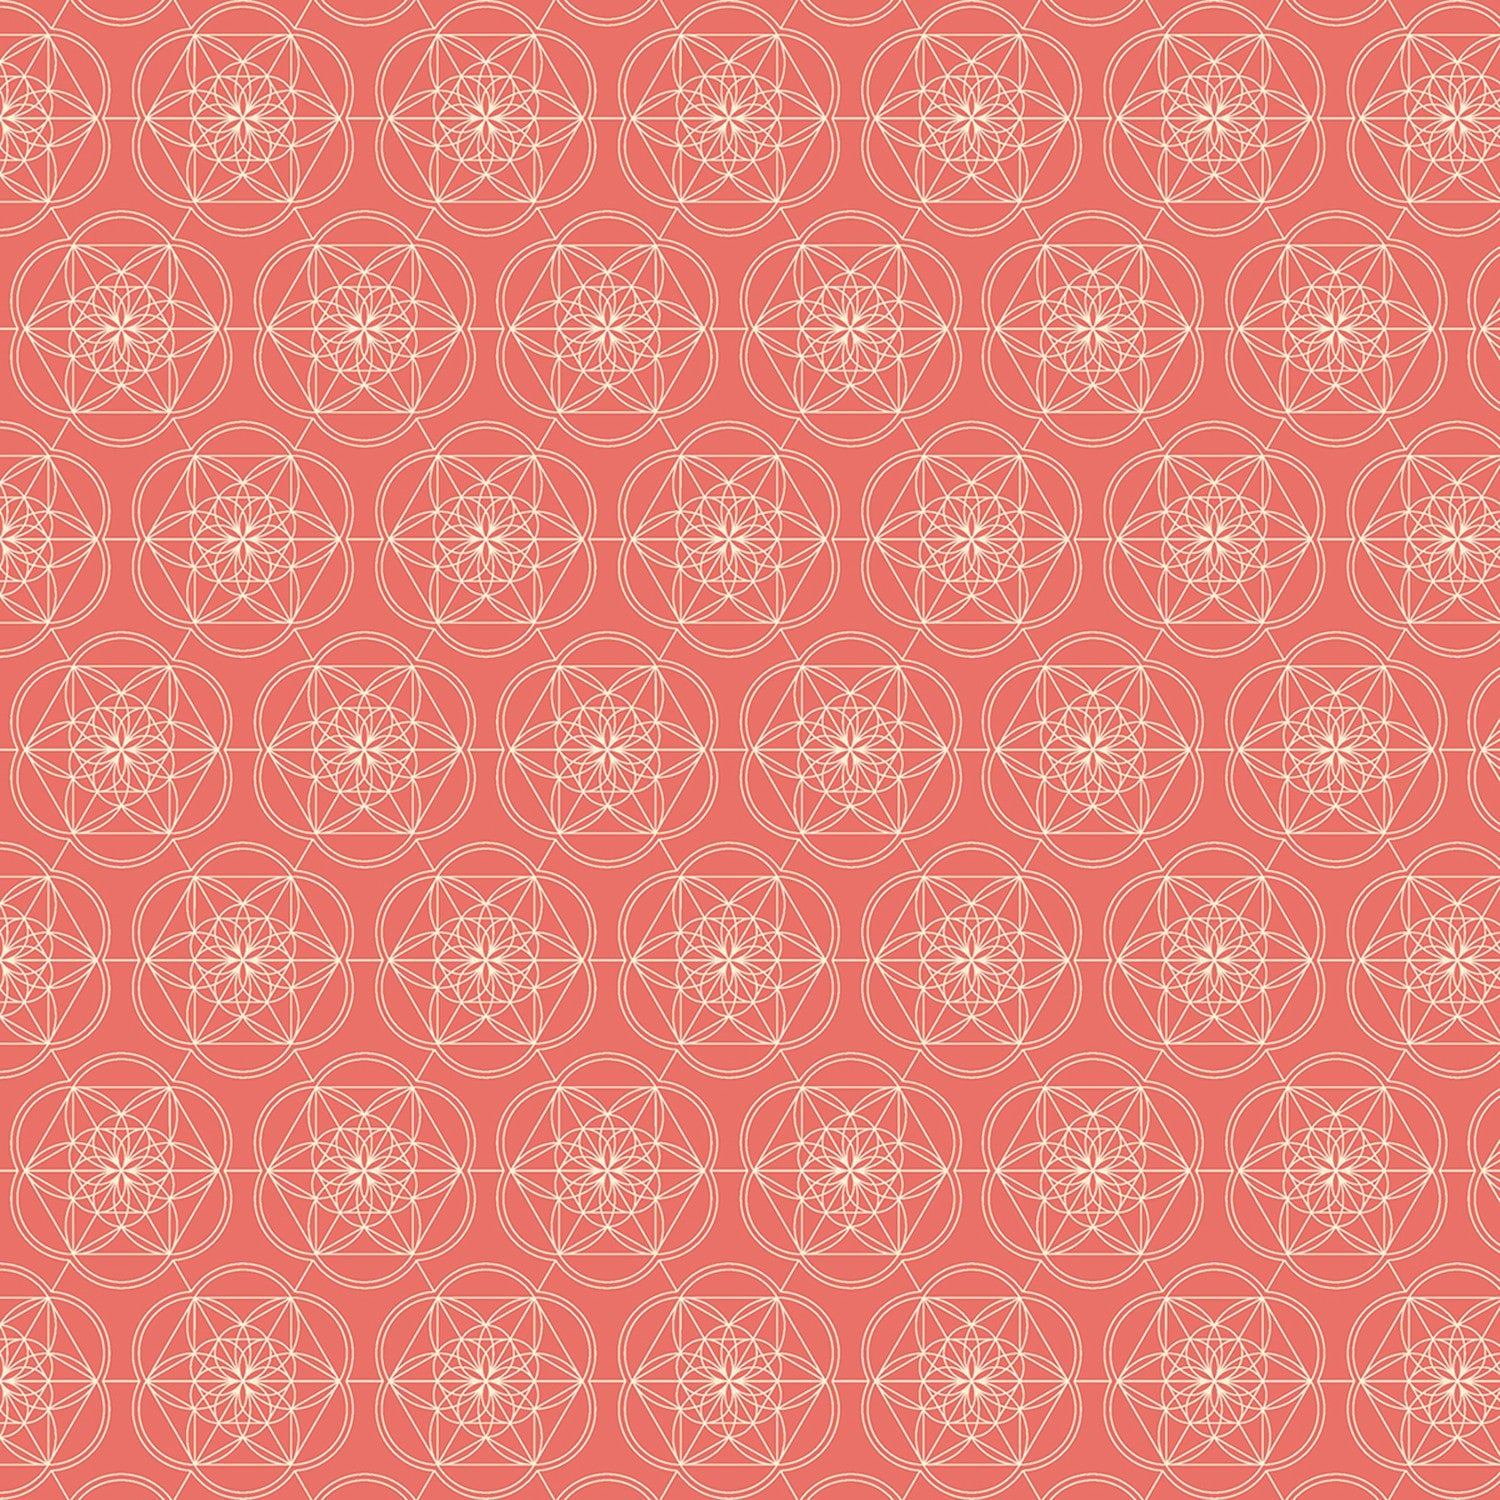 FLORABELLE Artisan Flowers Collection by Free Spirit Cotton Quilting Fabric